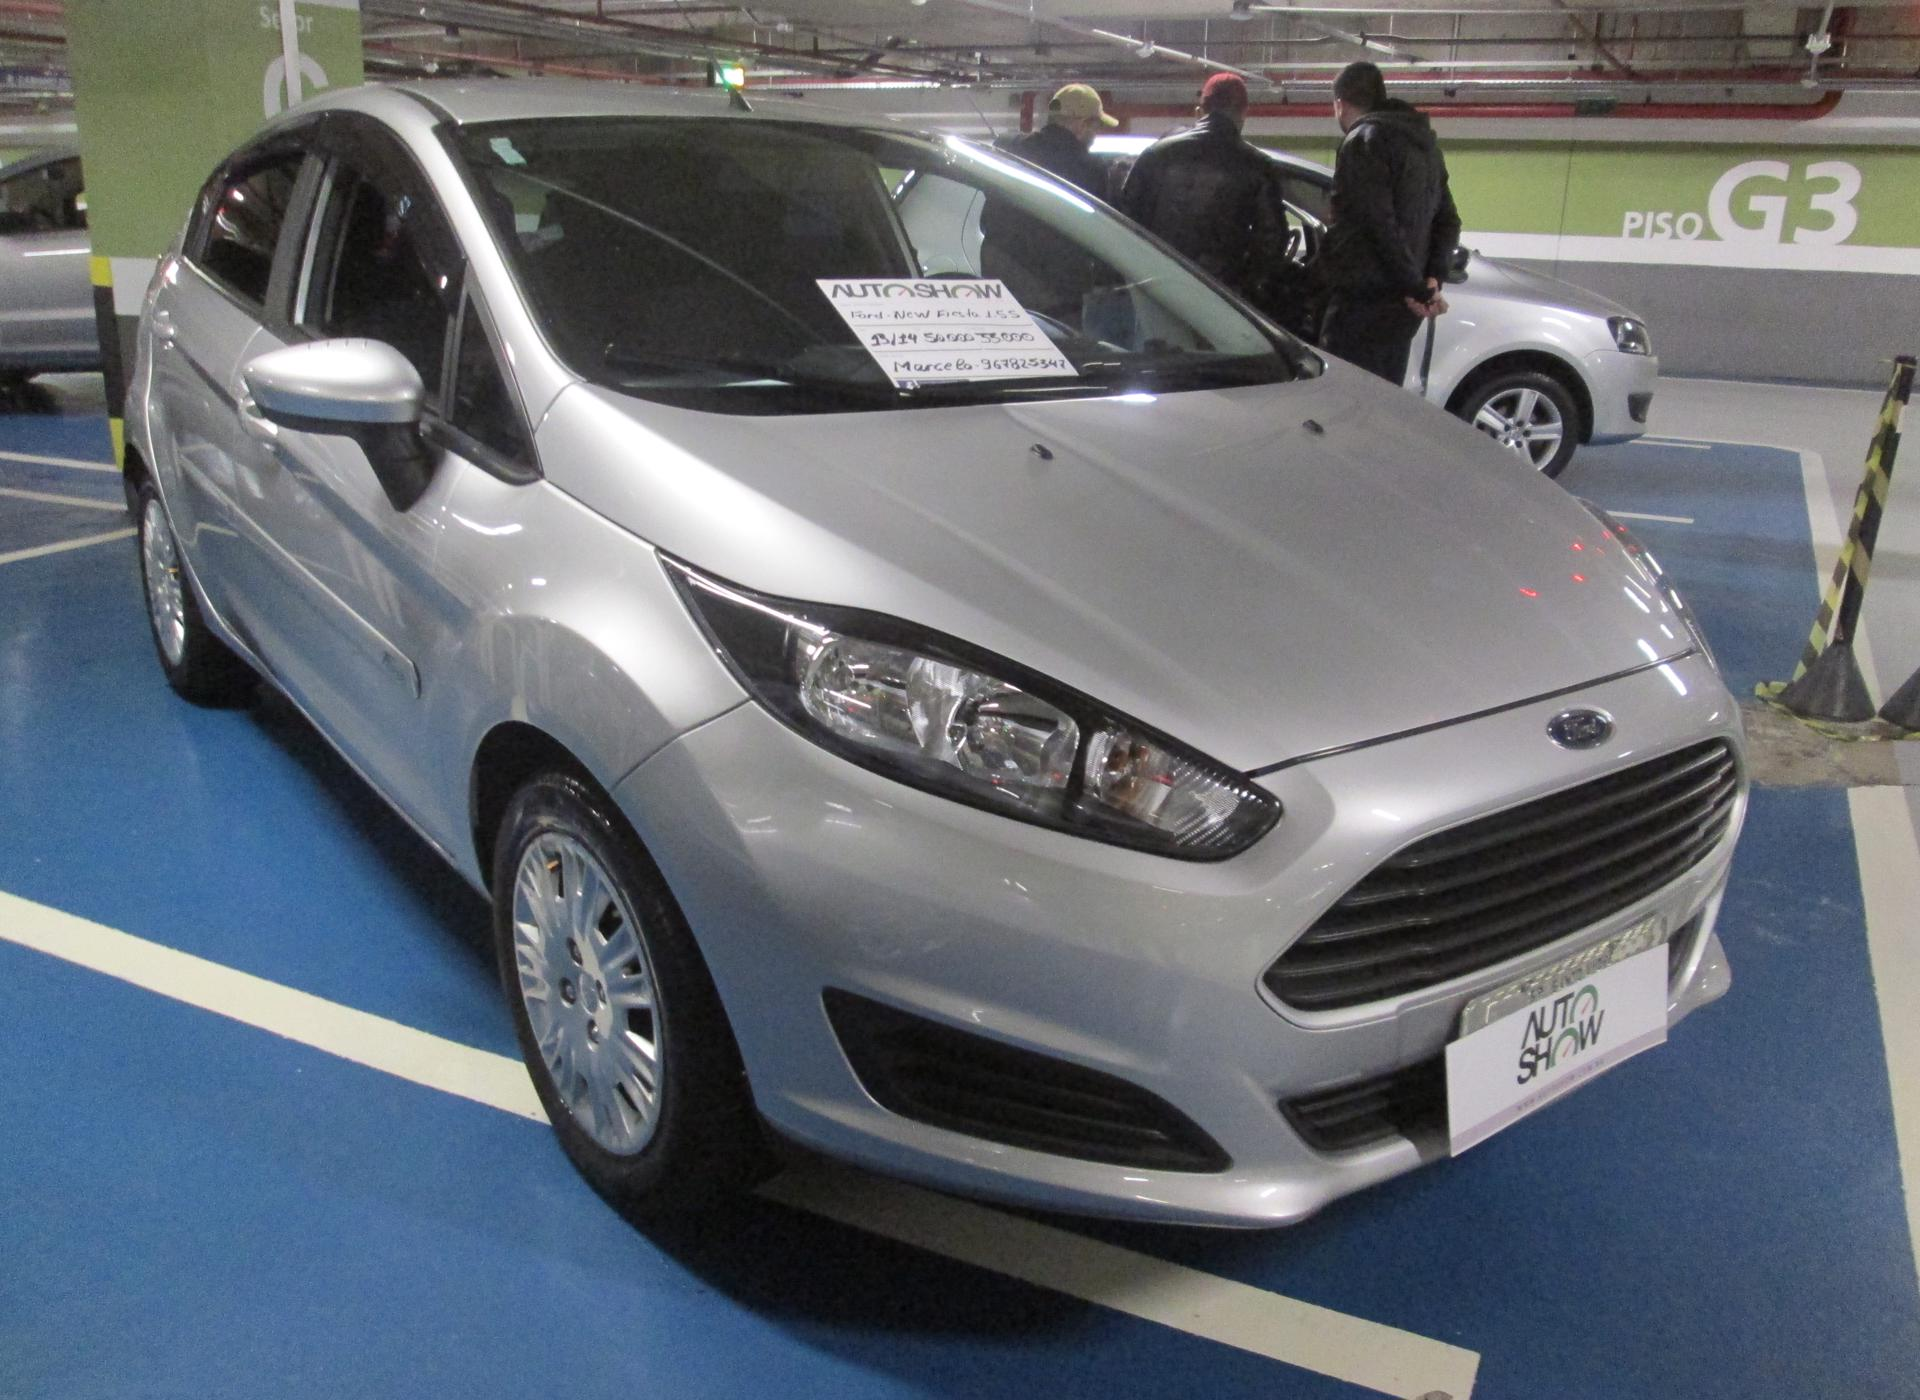 Feirão Auto Show Shopping ABC - FORD FIESTA  New Fiesta Hatch S 1.5 16V FLEX MEC. 2013-2014